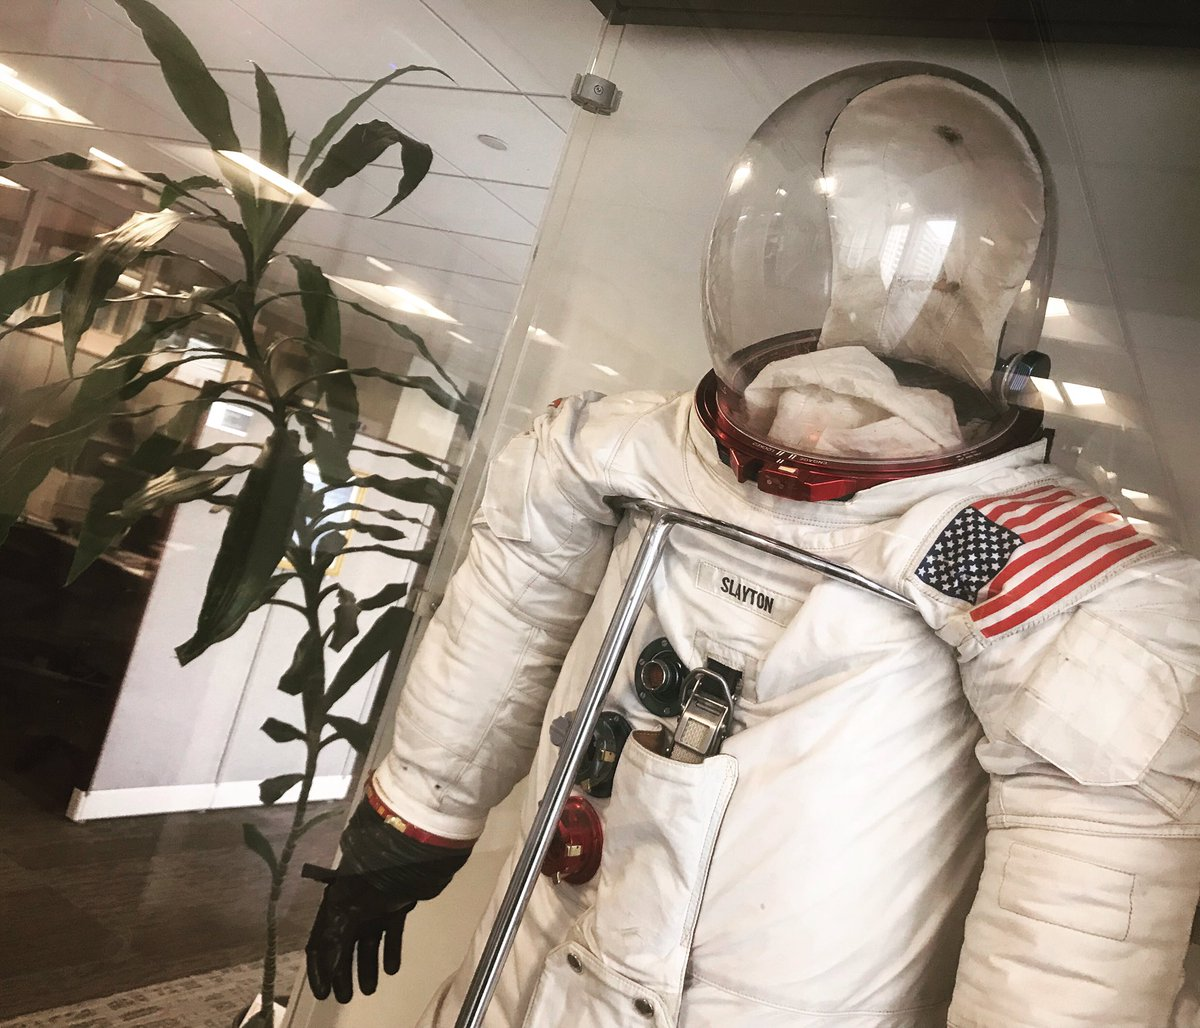 Look who I ran into....just another day at the office. Deke Slayton's backup fight suit worn during training for Apollo-Soyuz. <br>http://pic.twitter.com/lYukYqBFiS